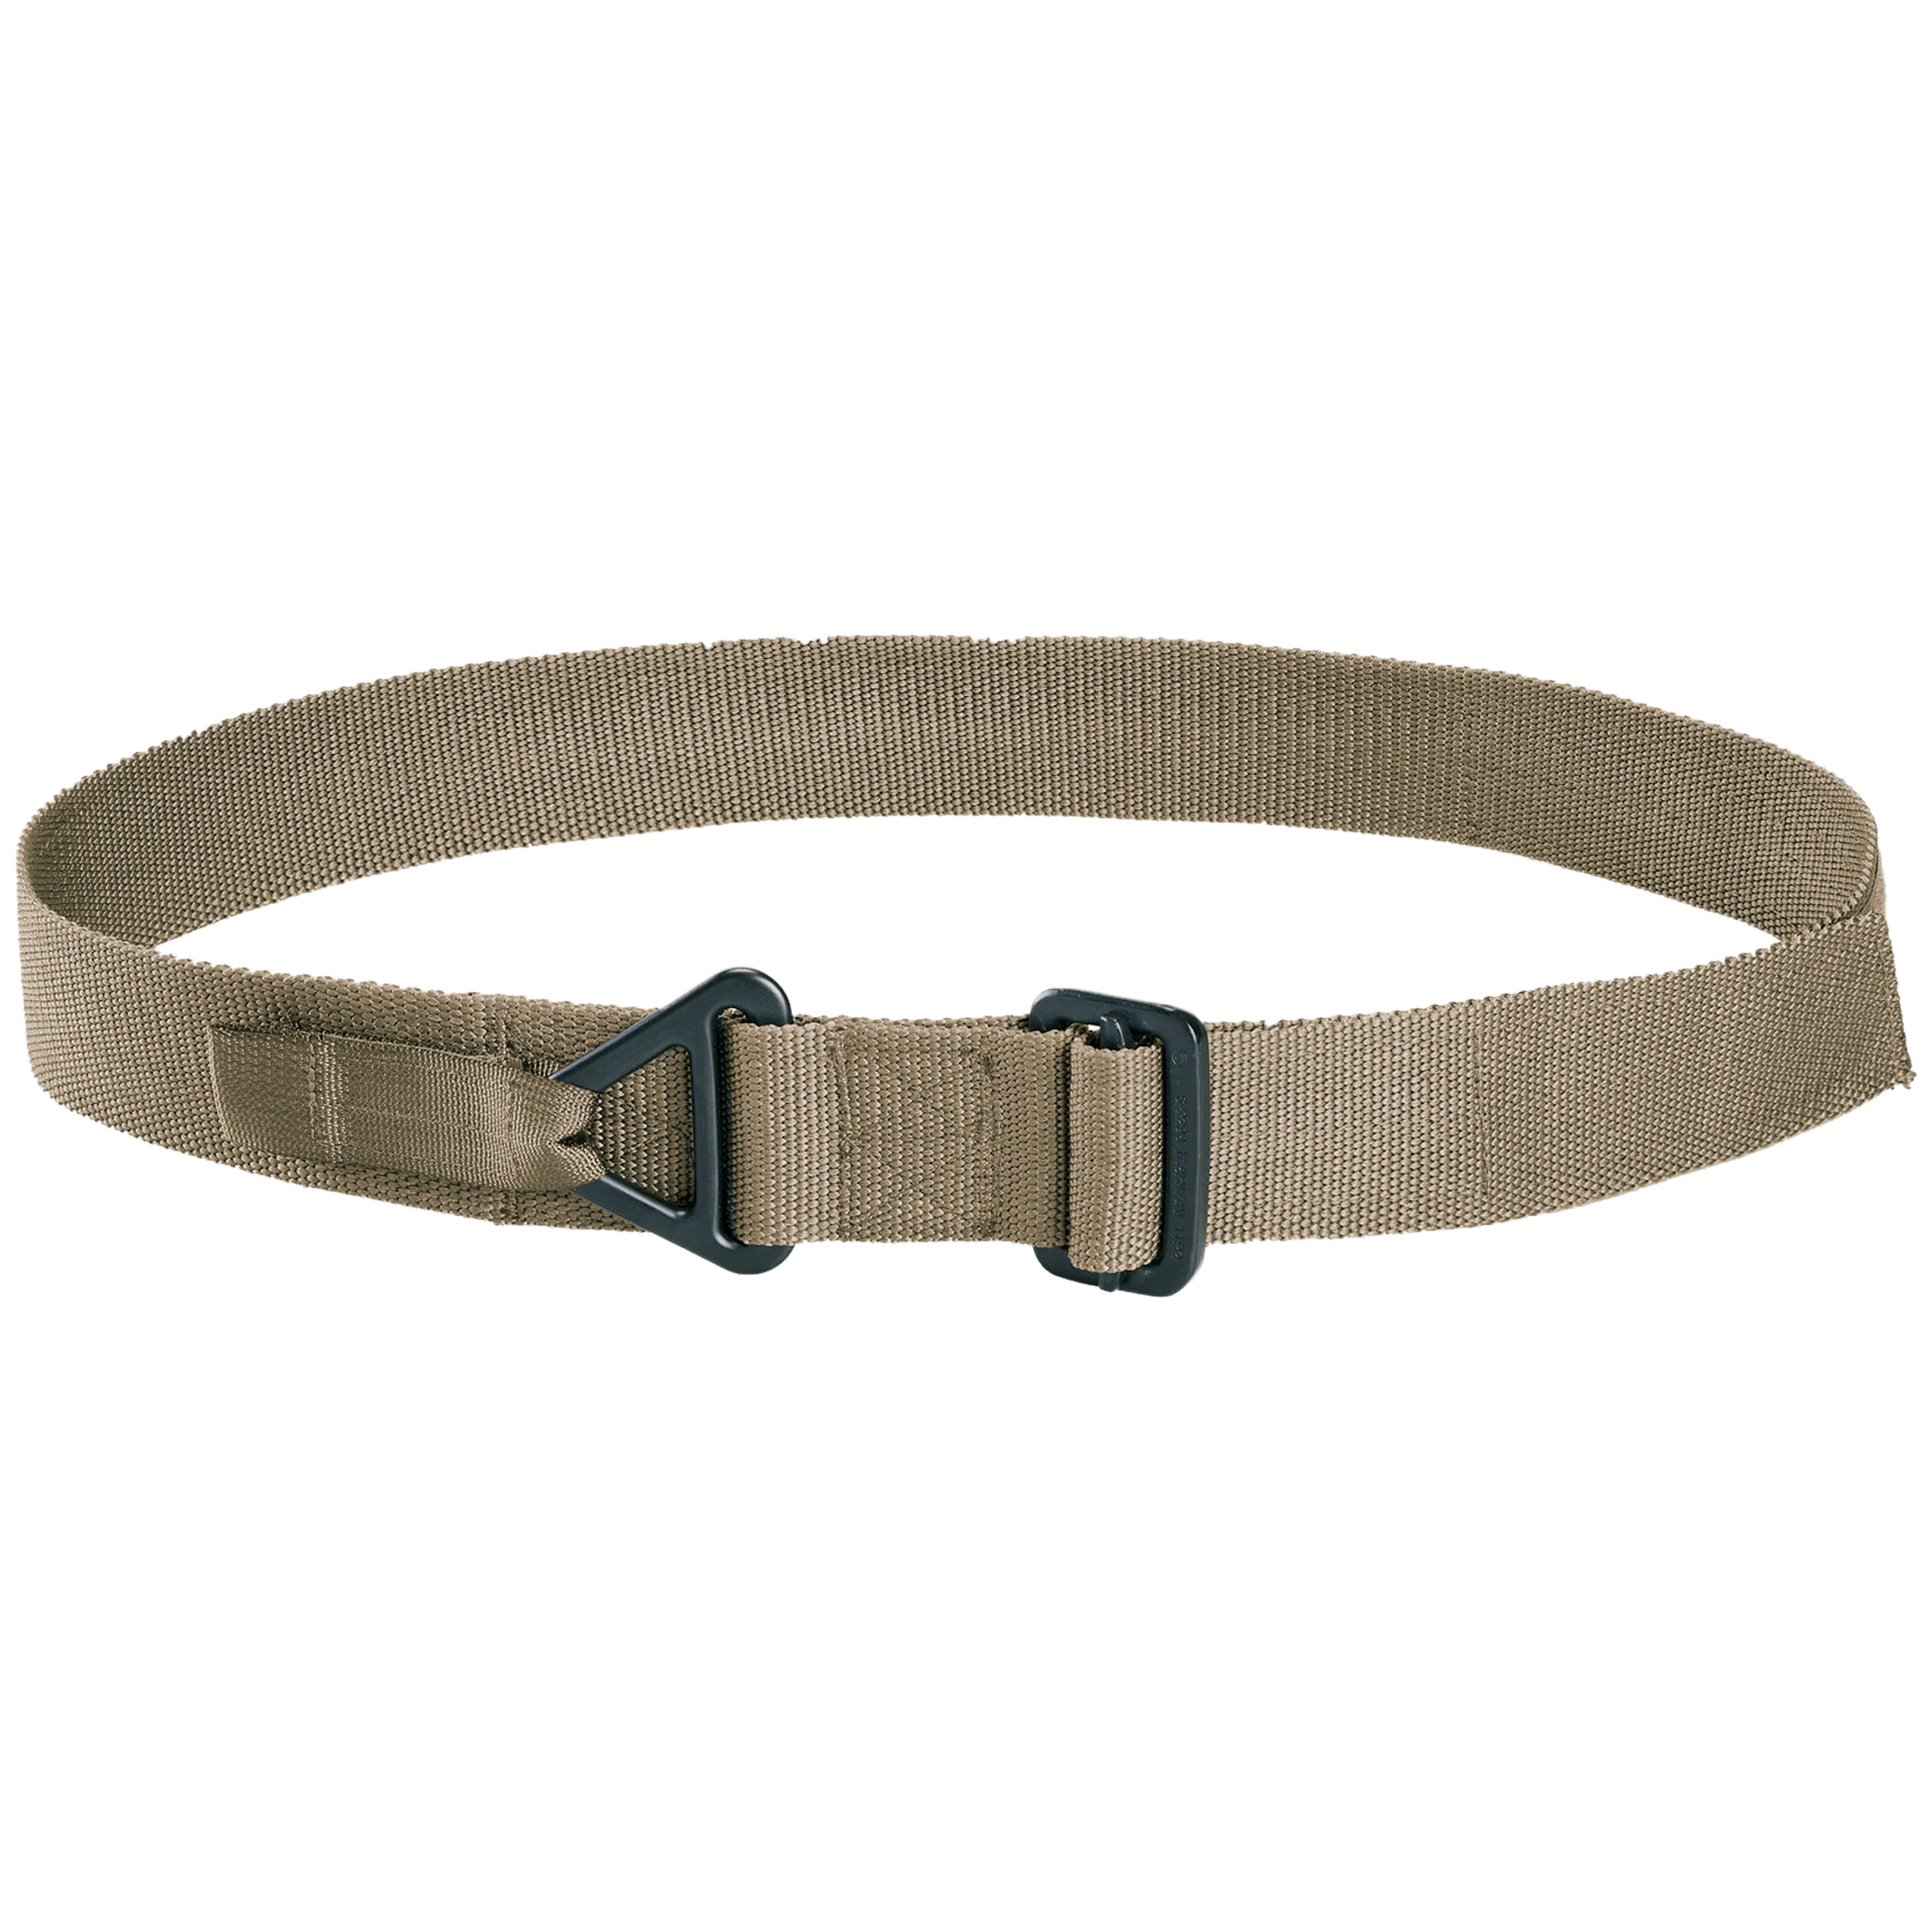 Defcon 5 Rigger Belt coyote